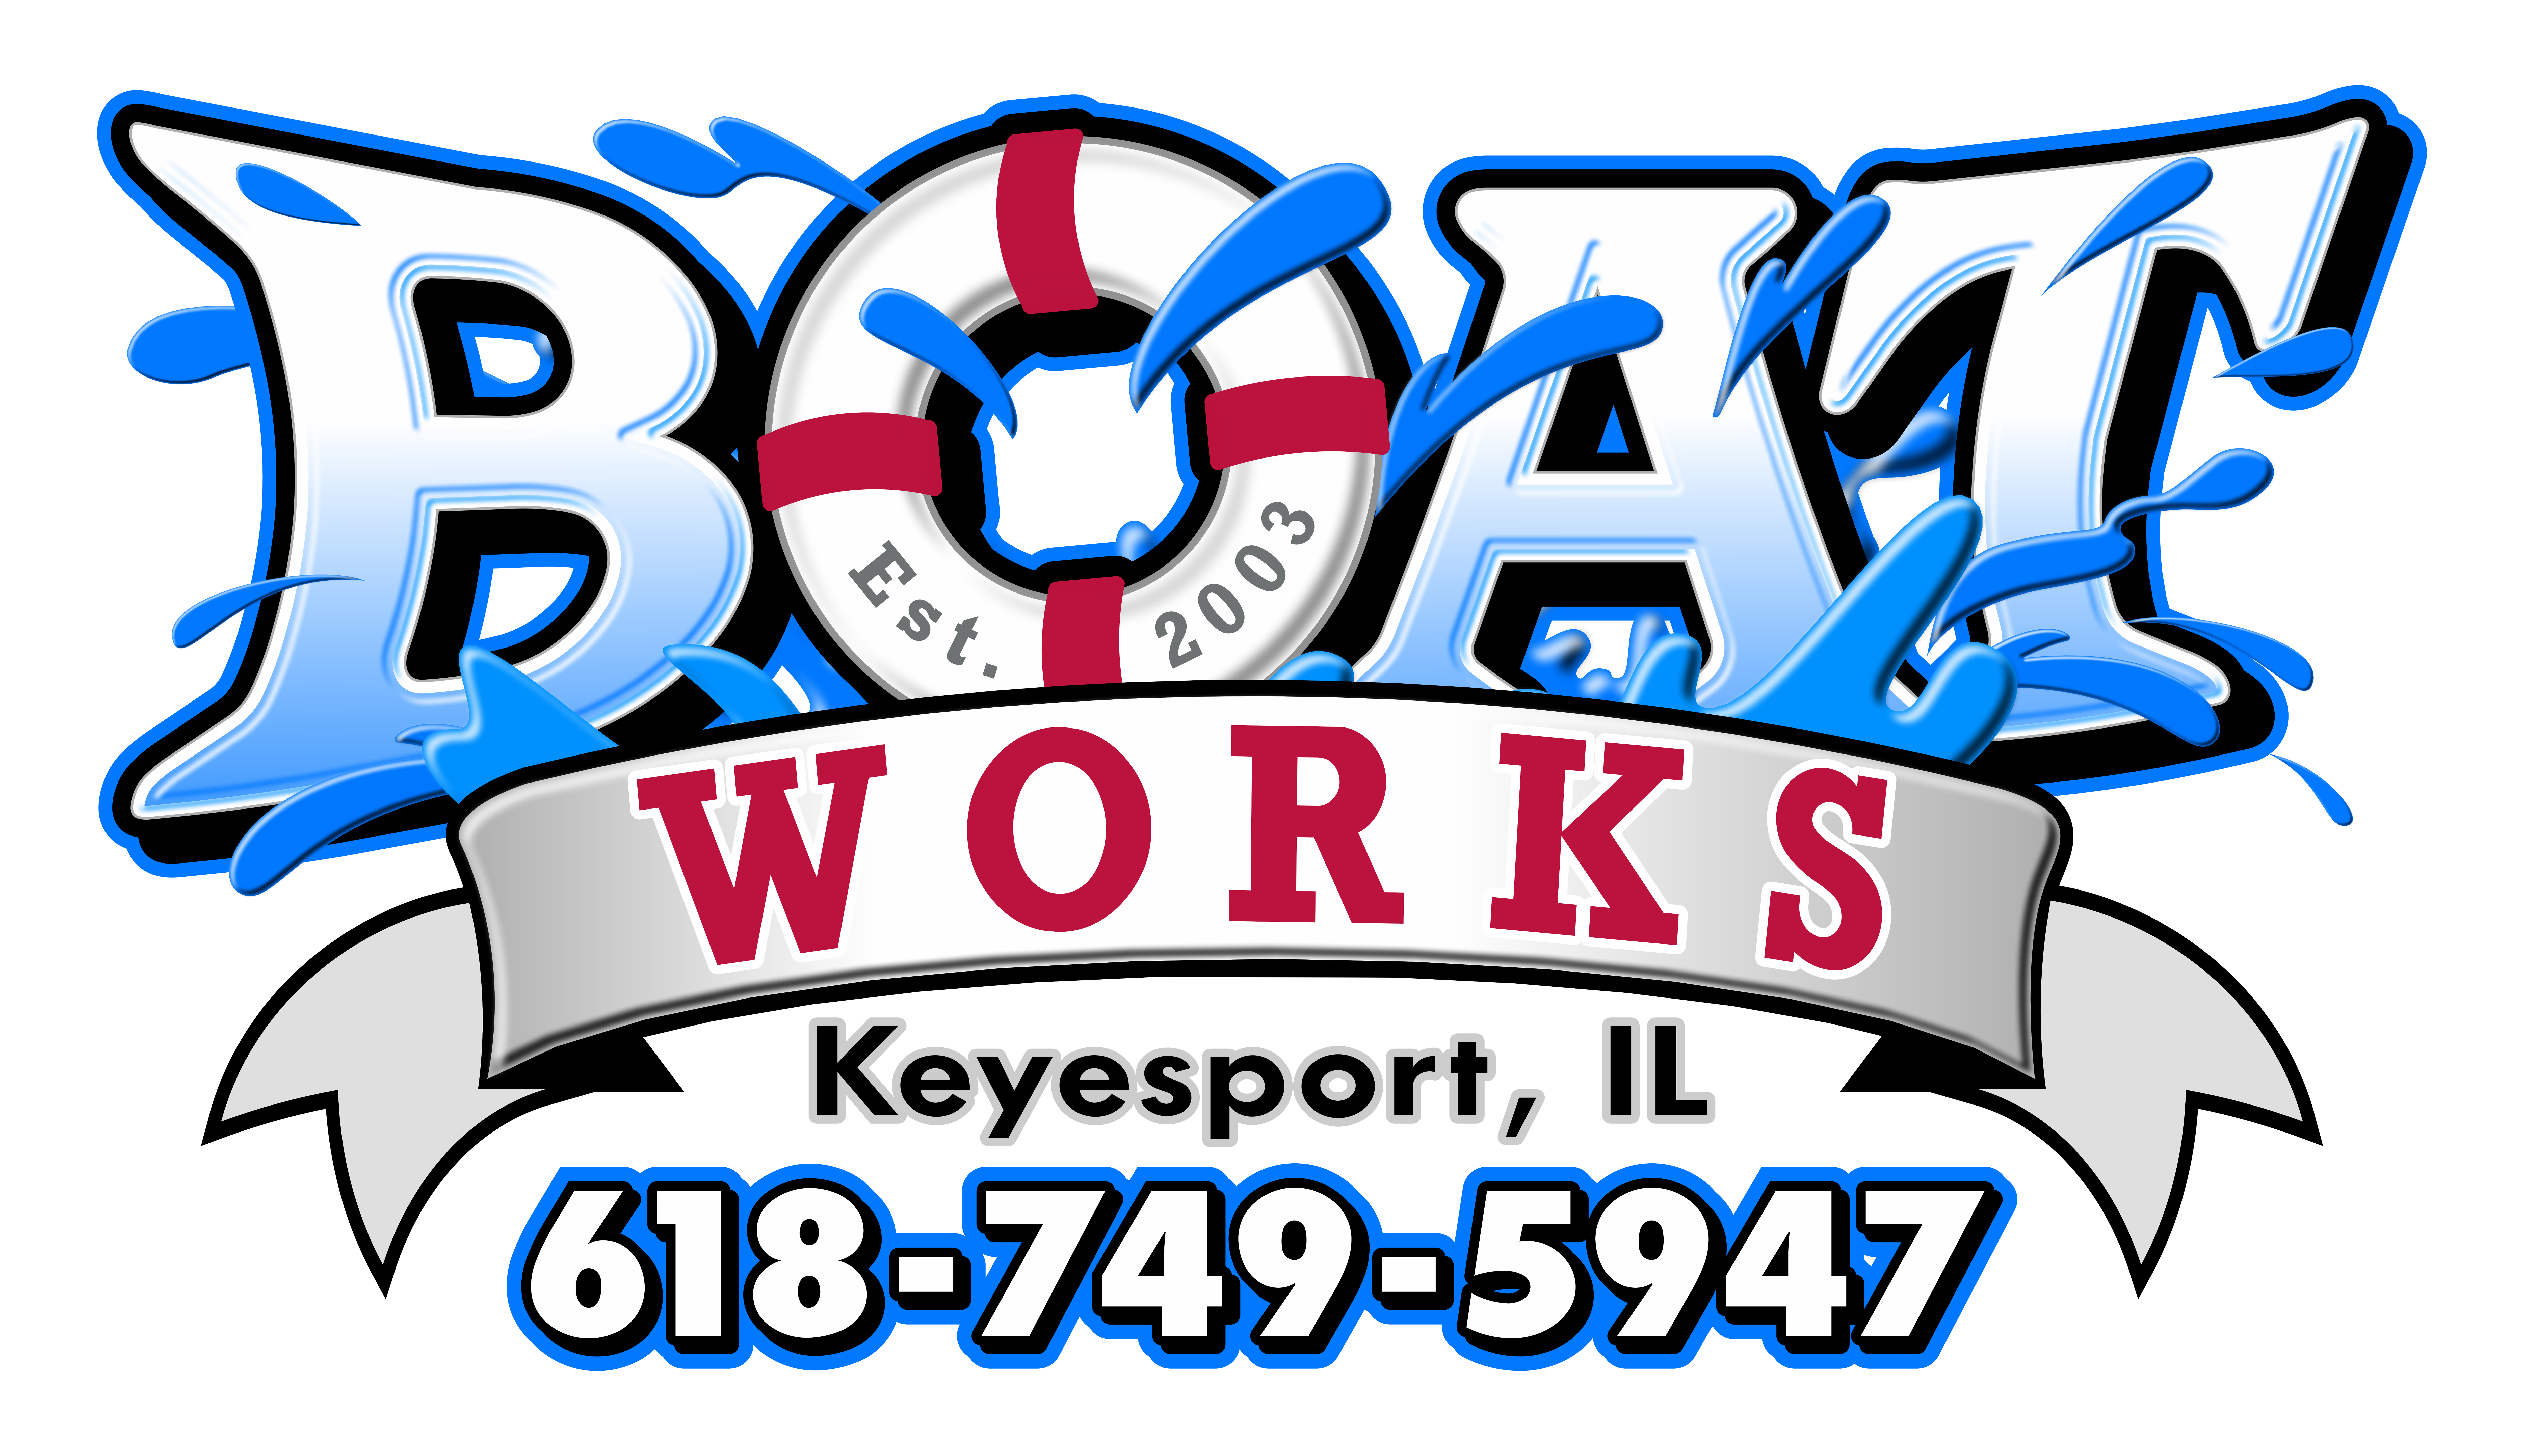 Welcome to Boat Works